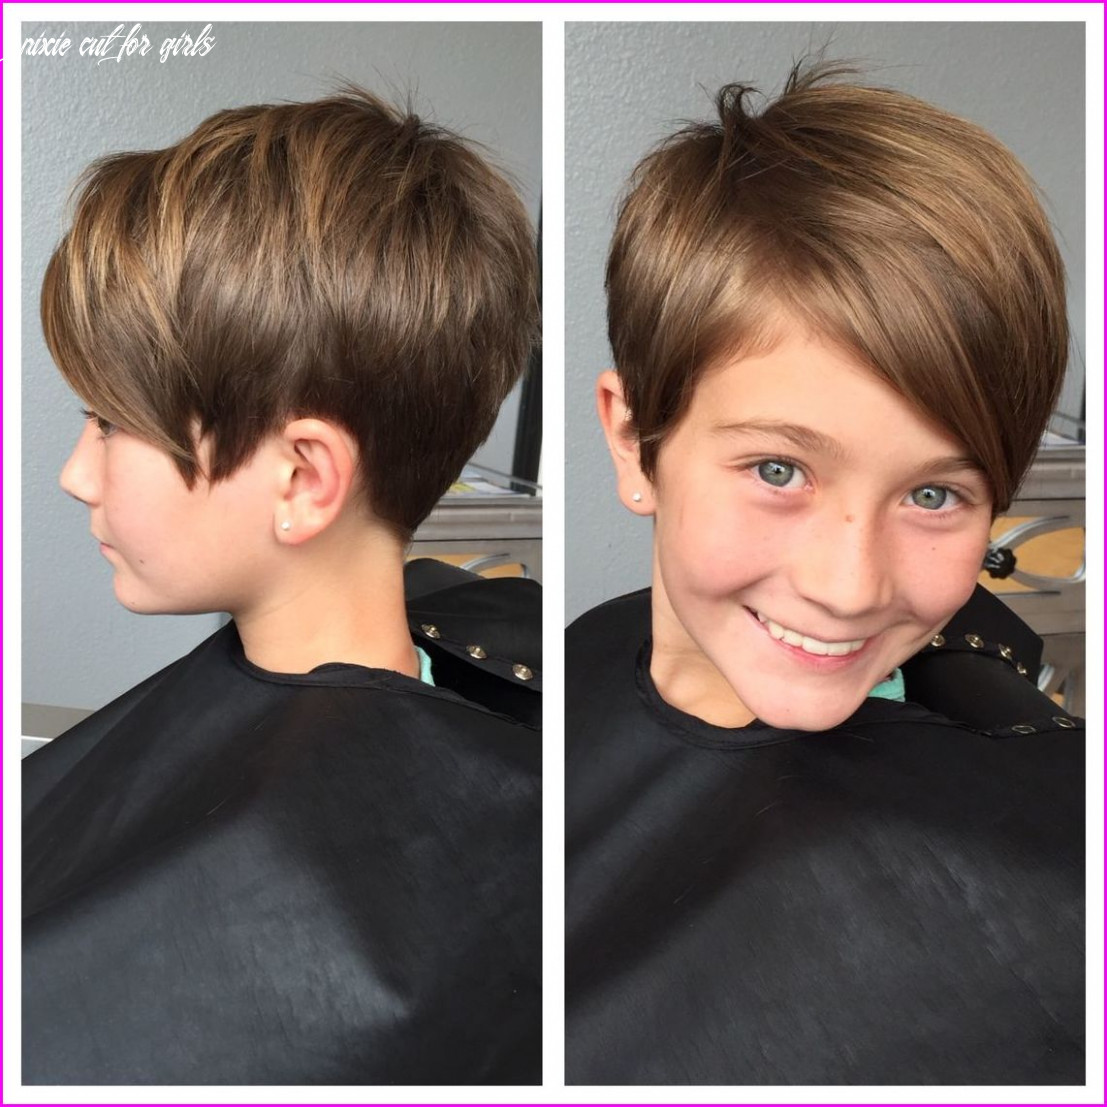 Pixie haircuts for little girls short pixie cuts pixie cut for girls